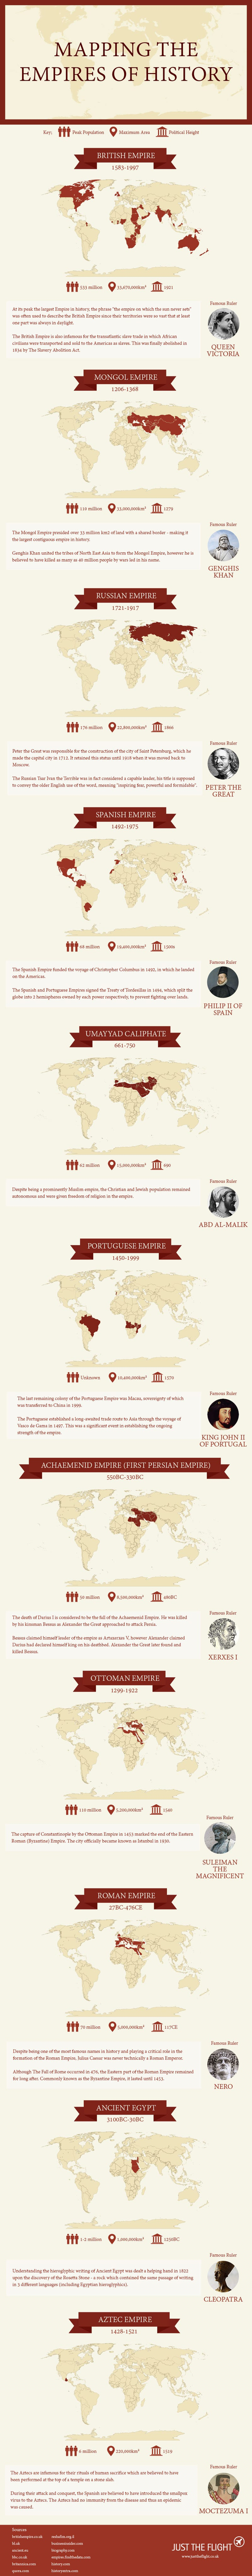 World's Biggest Empires From History